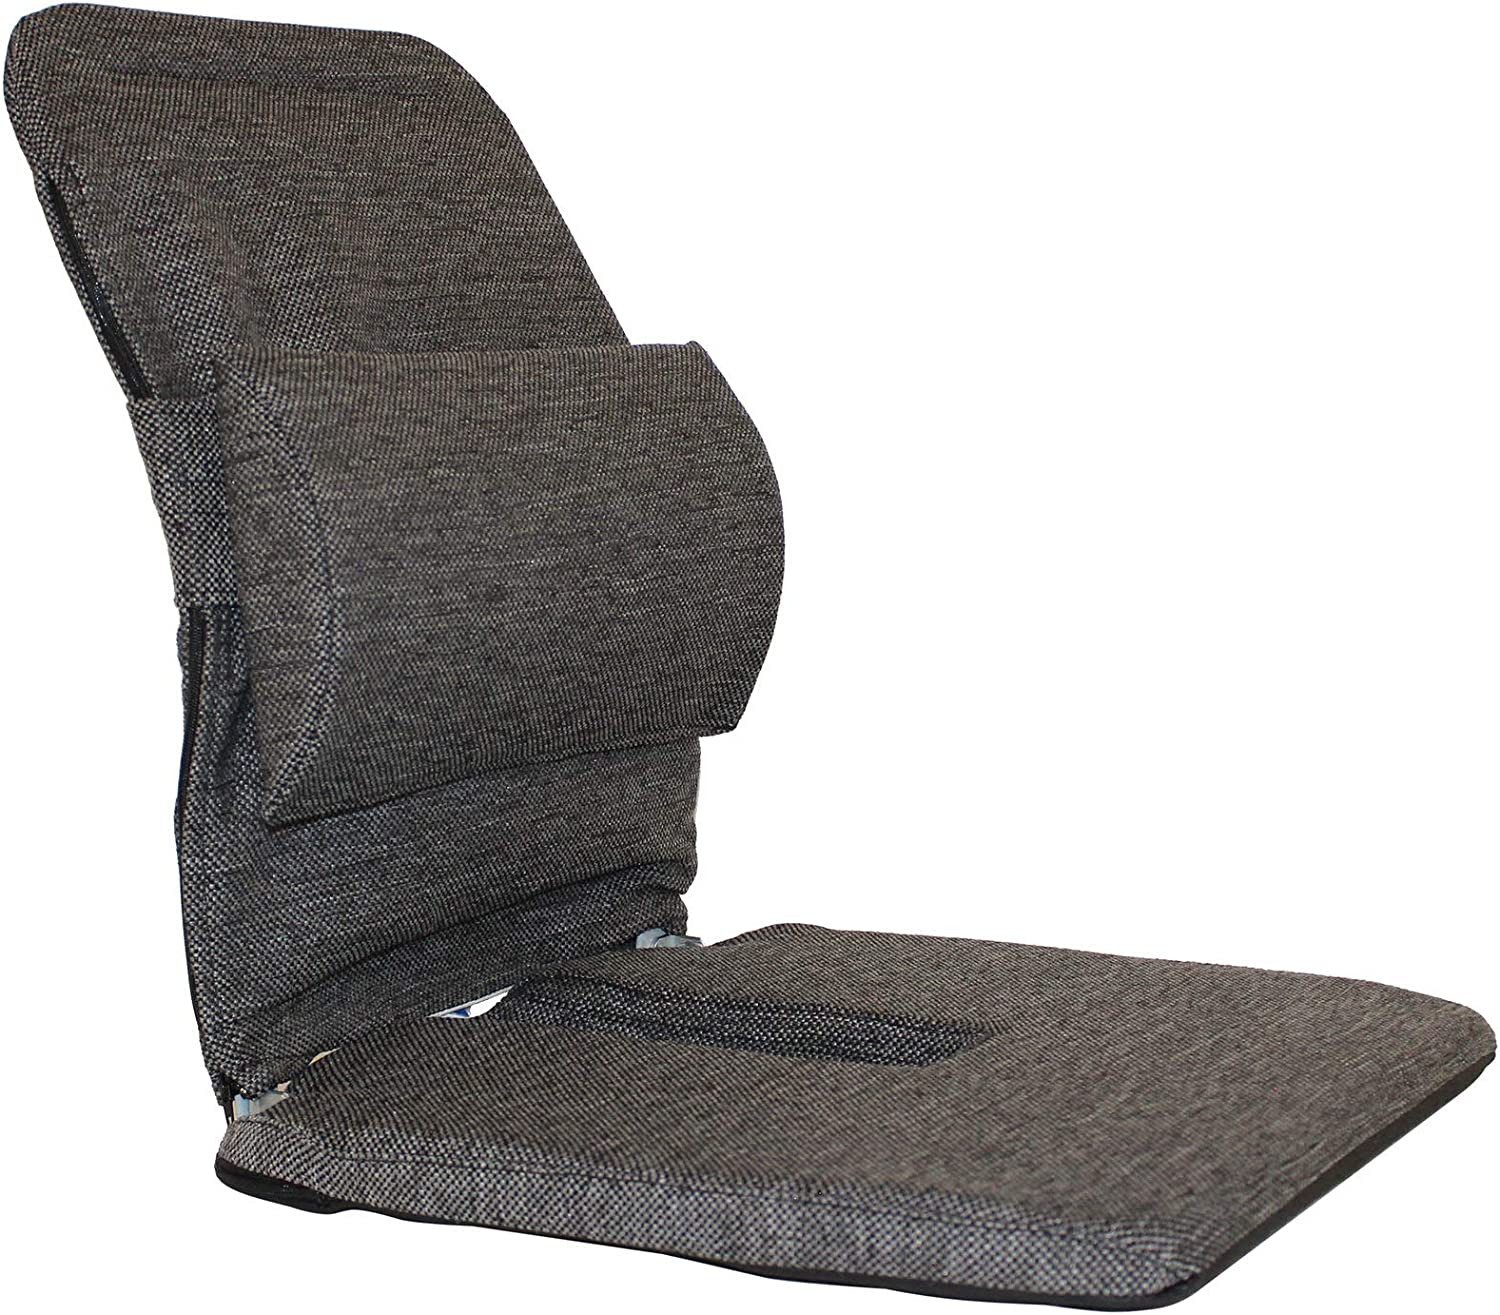 Q QUALITY BRAND COMPANY McCartys Q-BRSCRXM-BLK 14 in Wide Memory Foam Sacro-Ease Ergonomic Seat Support 16x14x19 in Black Color